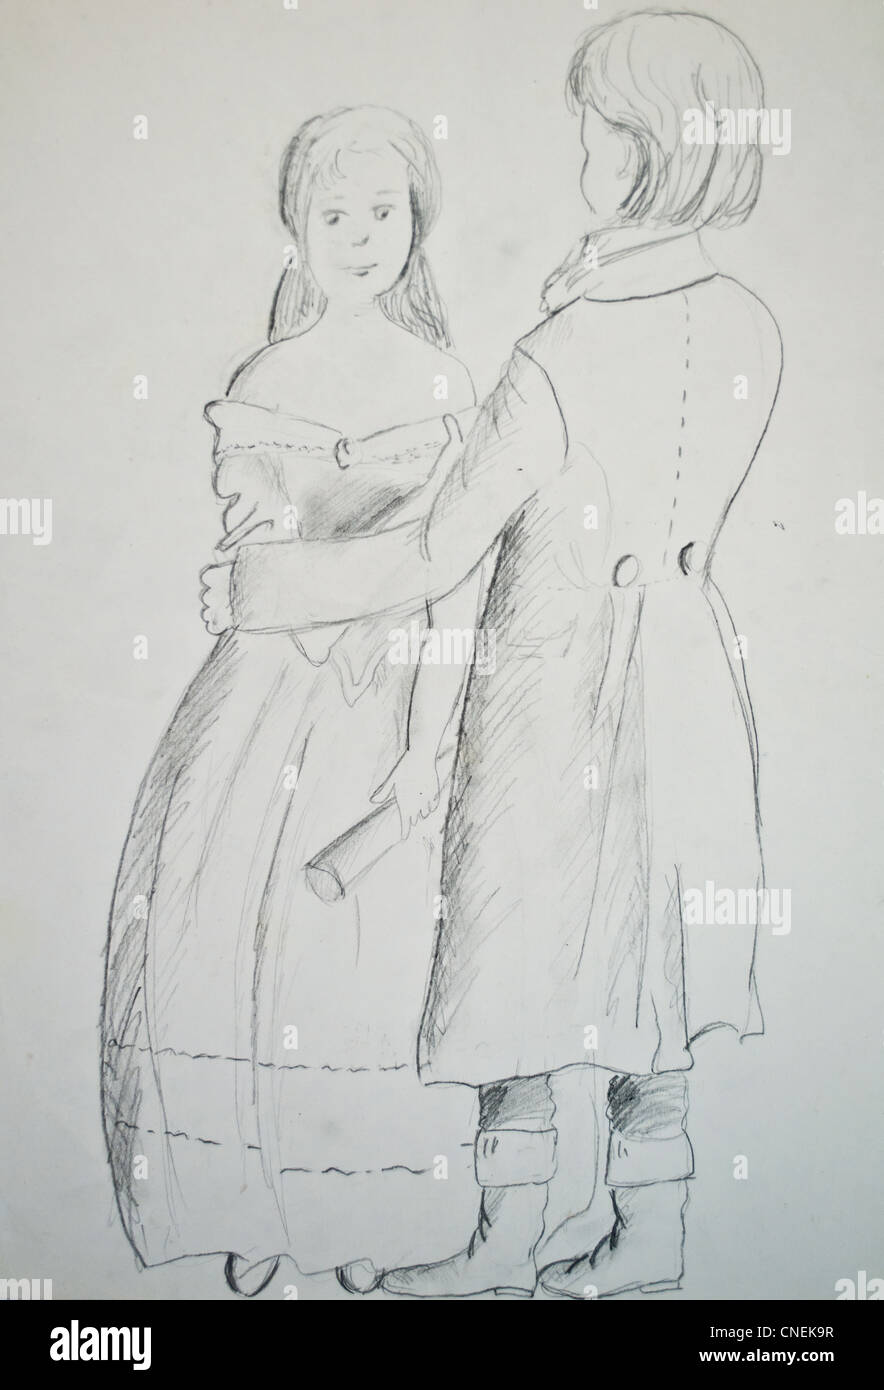 Pencil sketch of couple in love stock photo 47651011 alamy